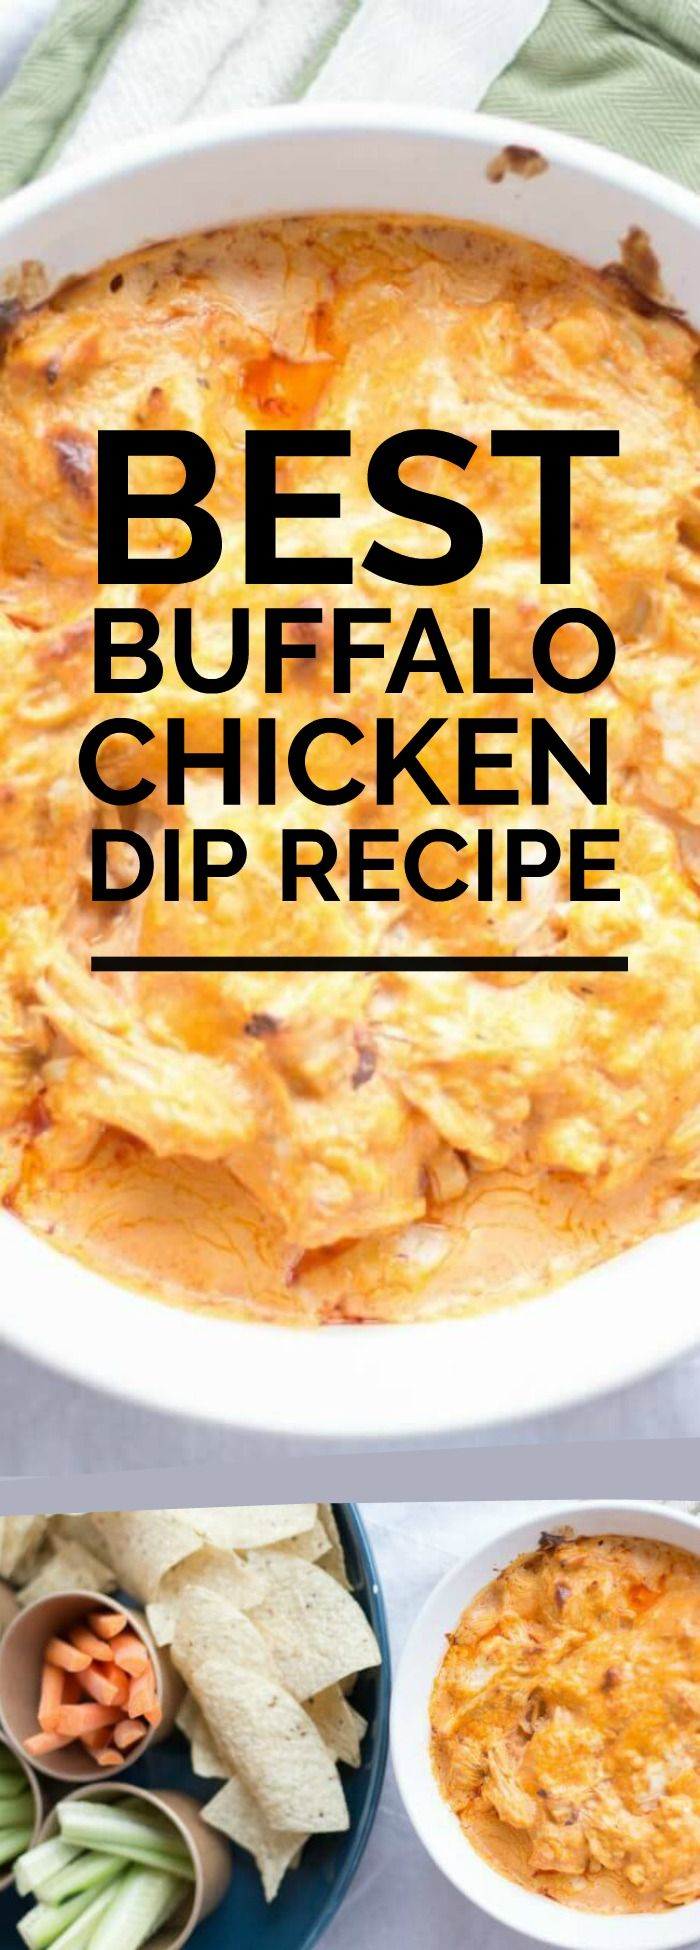 THE Best Buffalo Chicken Dip Recipe